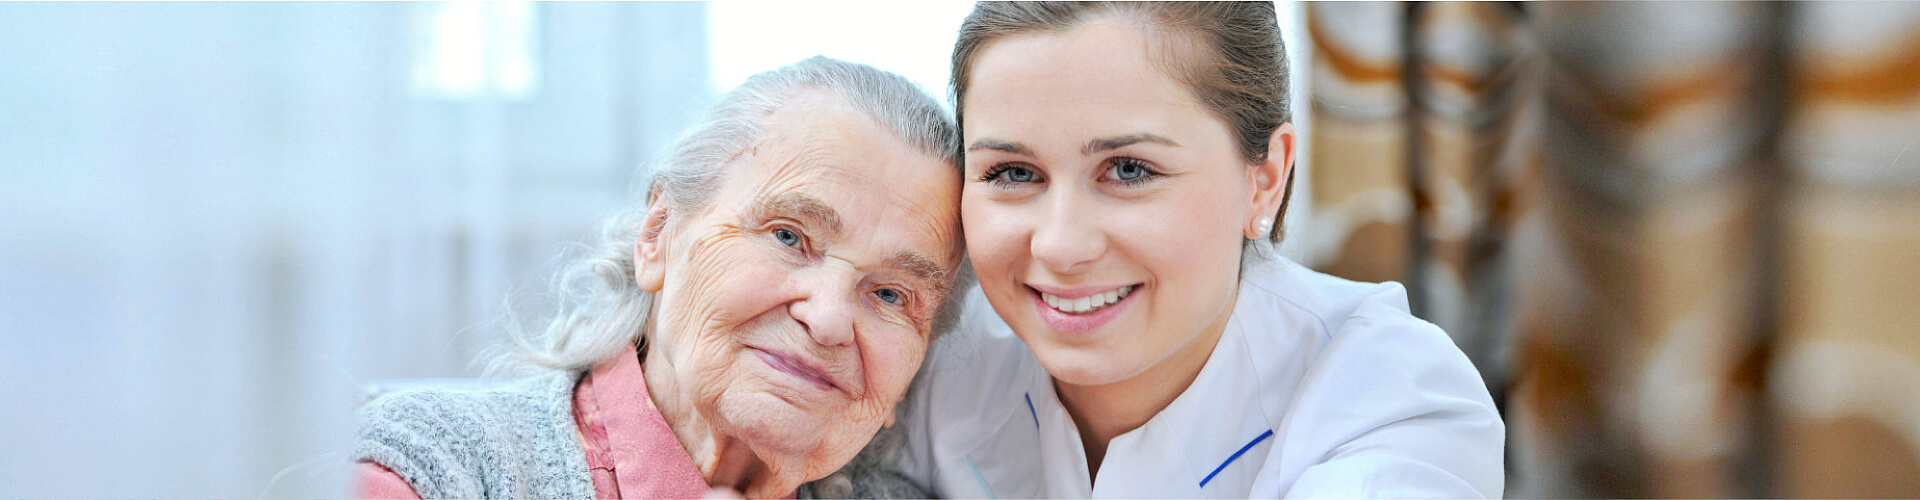 caregiver and senior woman are smiling